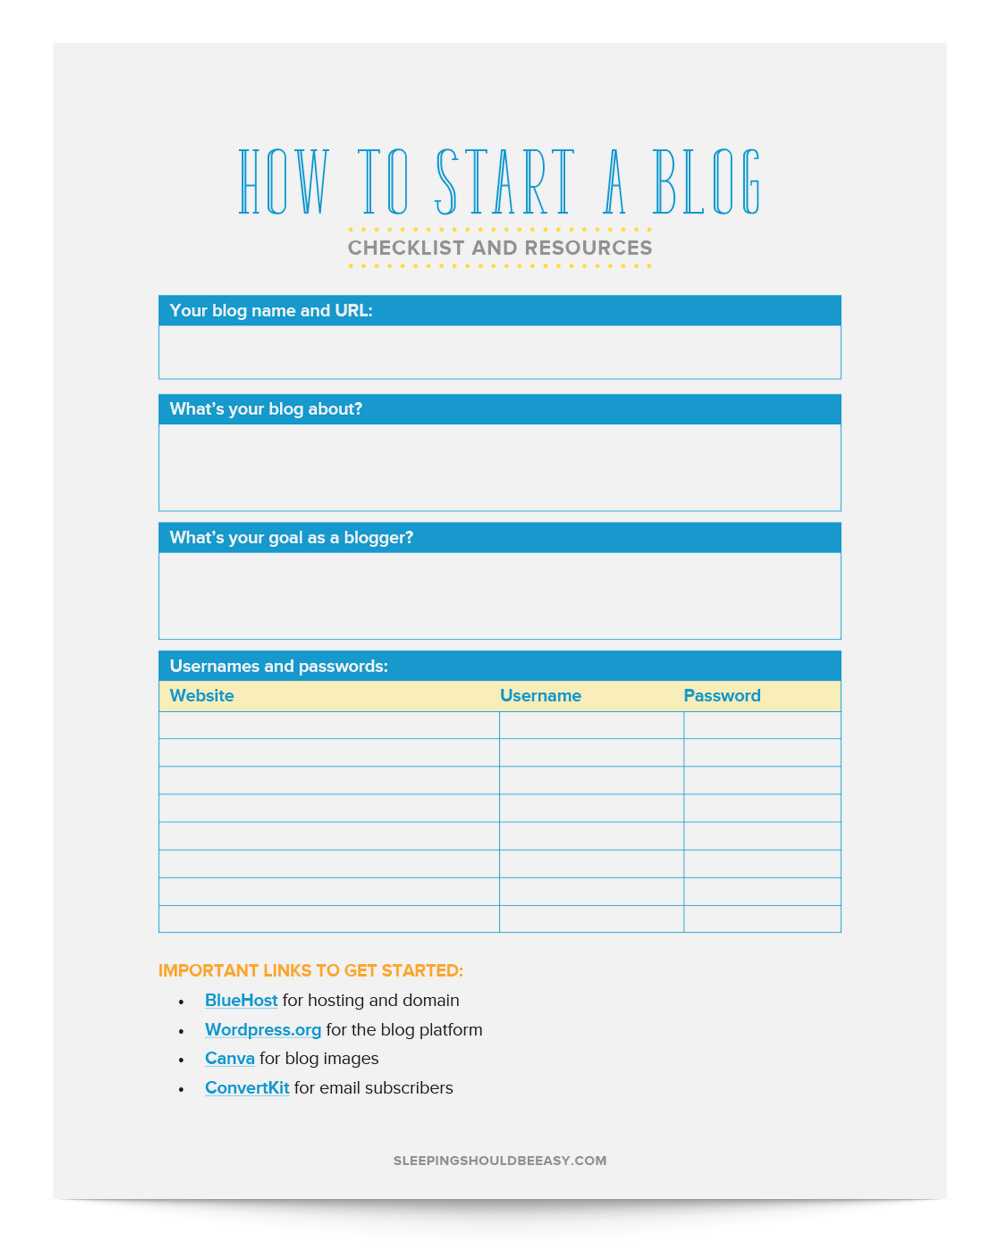 Learn how to start a blog! Anyone can start blogging, and with the right resources and steps, you'll know just what to do to get started.